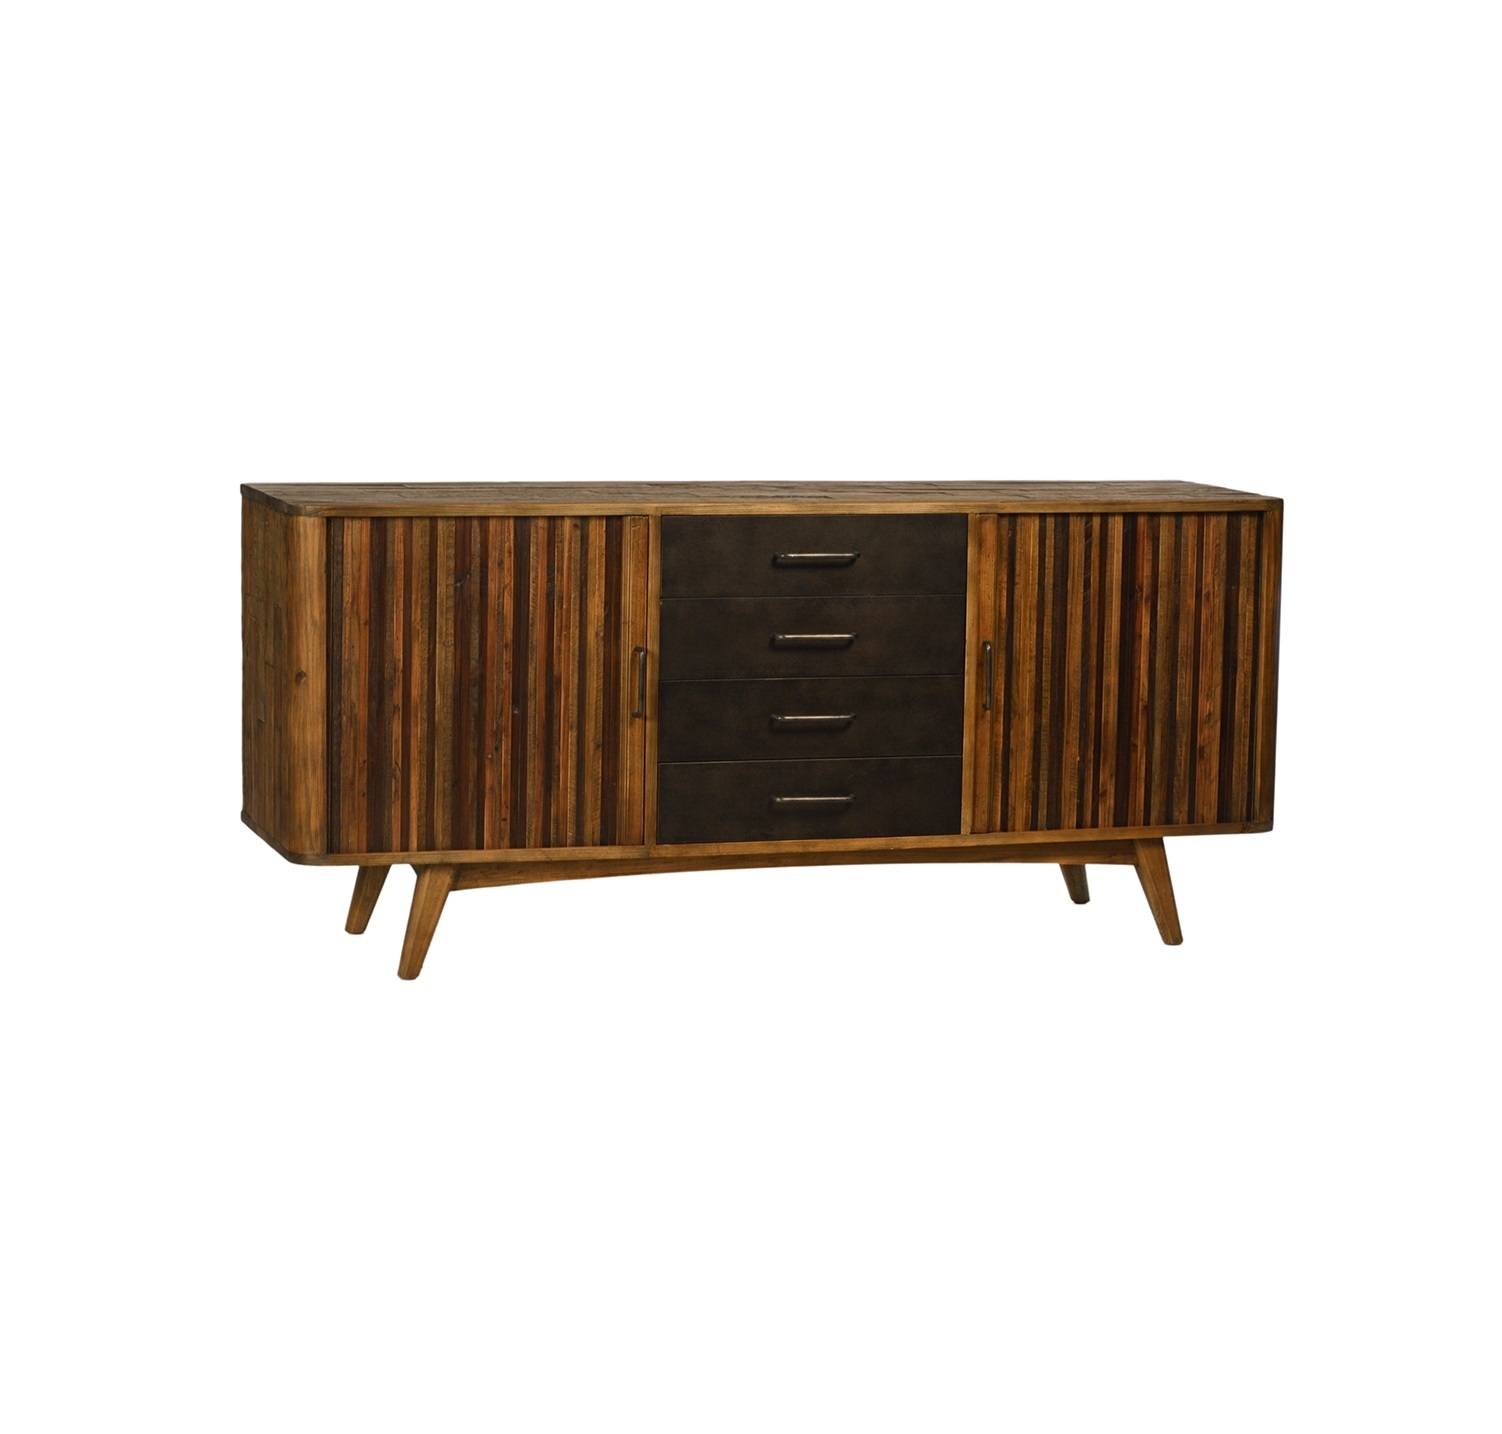 Jeremy Sideboard For Most Popular Rustic Black & Zebra Pine Sideboards (View 6 of 20)